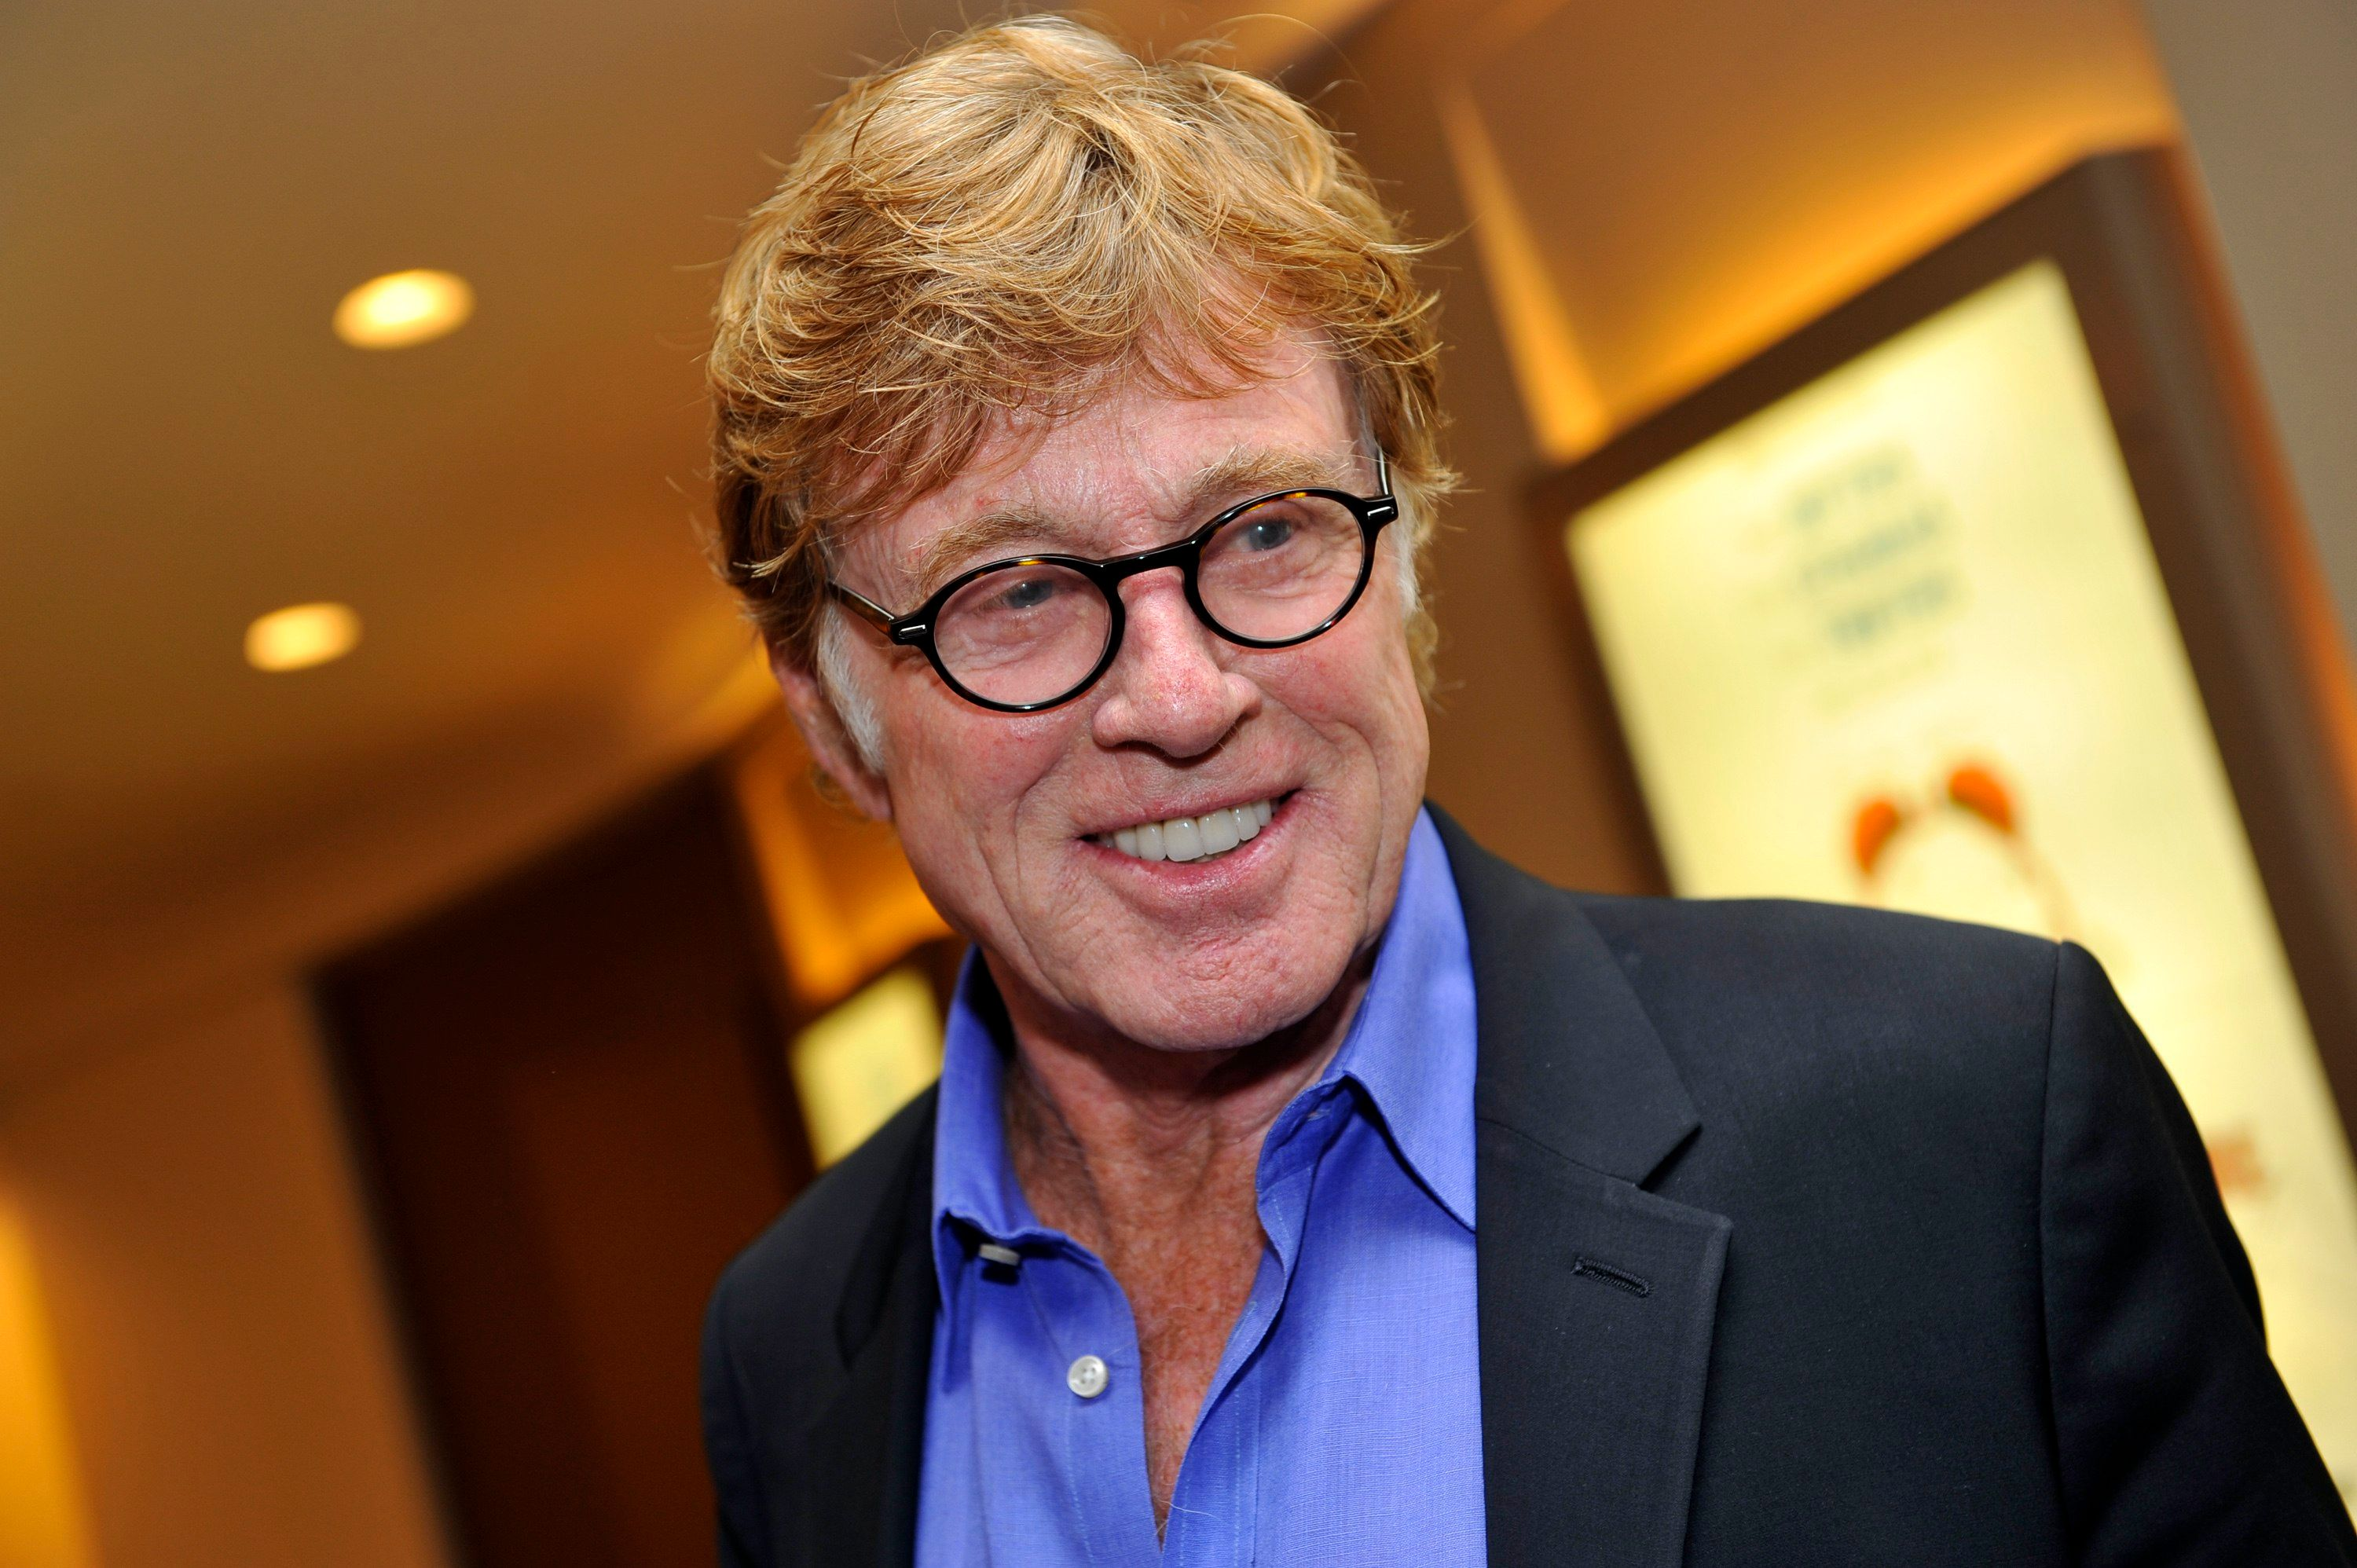 Actor Robert Redford arrives for the premiere screening of HBO's The Big Picture : Rethinking Dyslexia in New York City